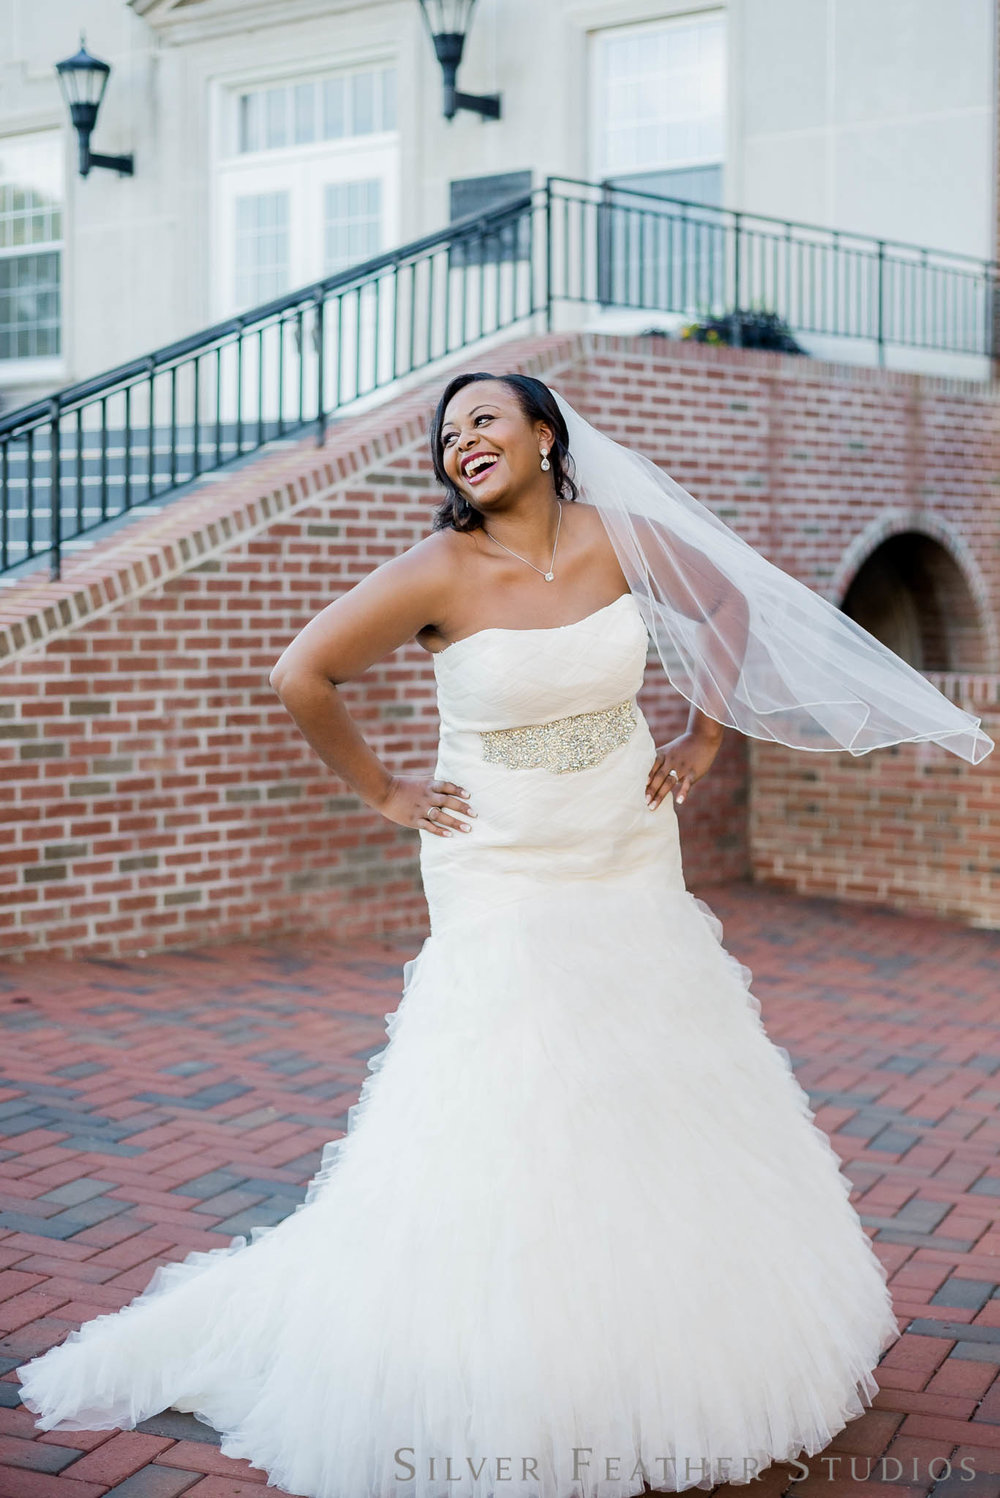 Bridal session by Silver Feather Studios at Butler Chapel.